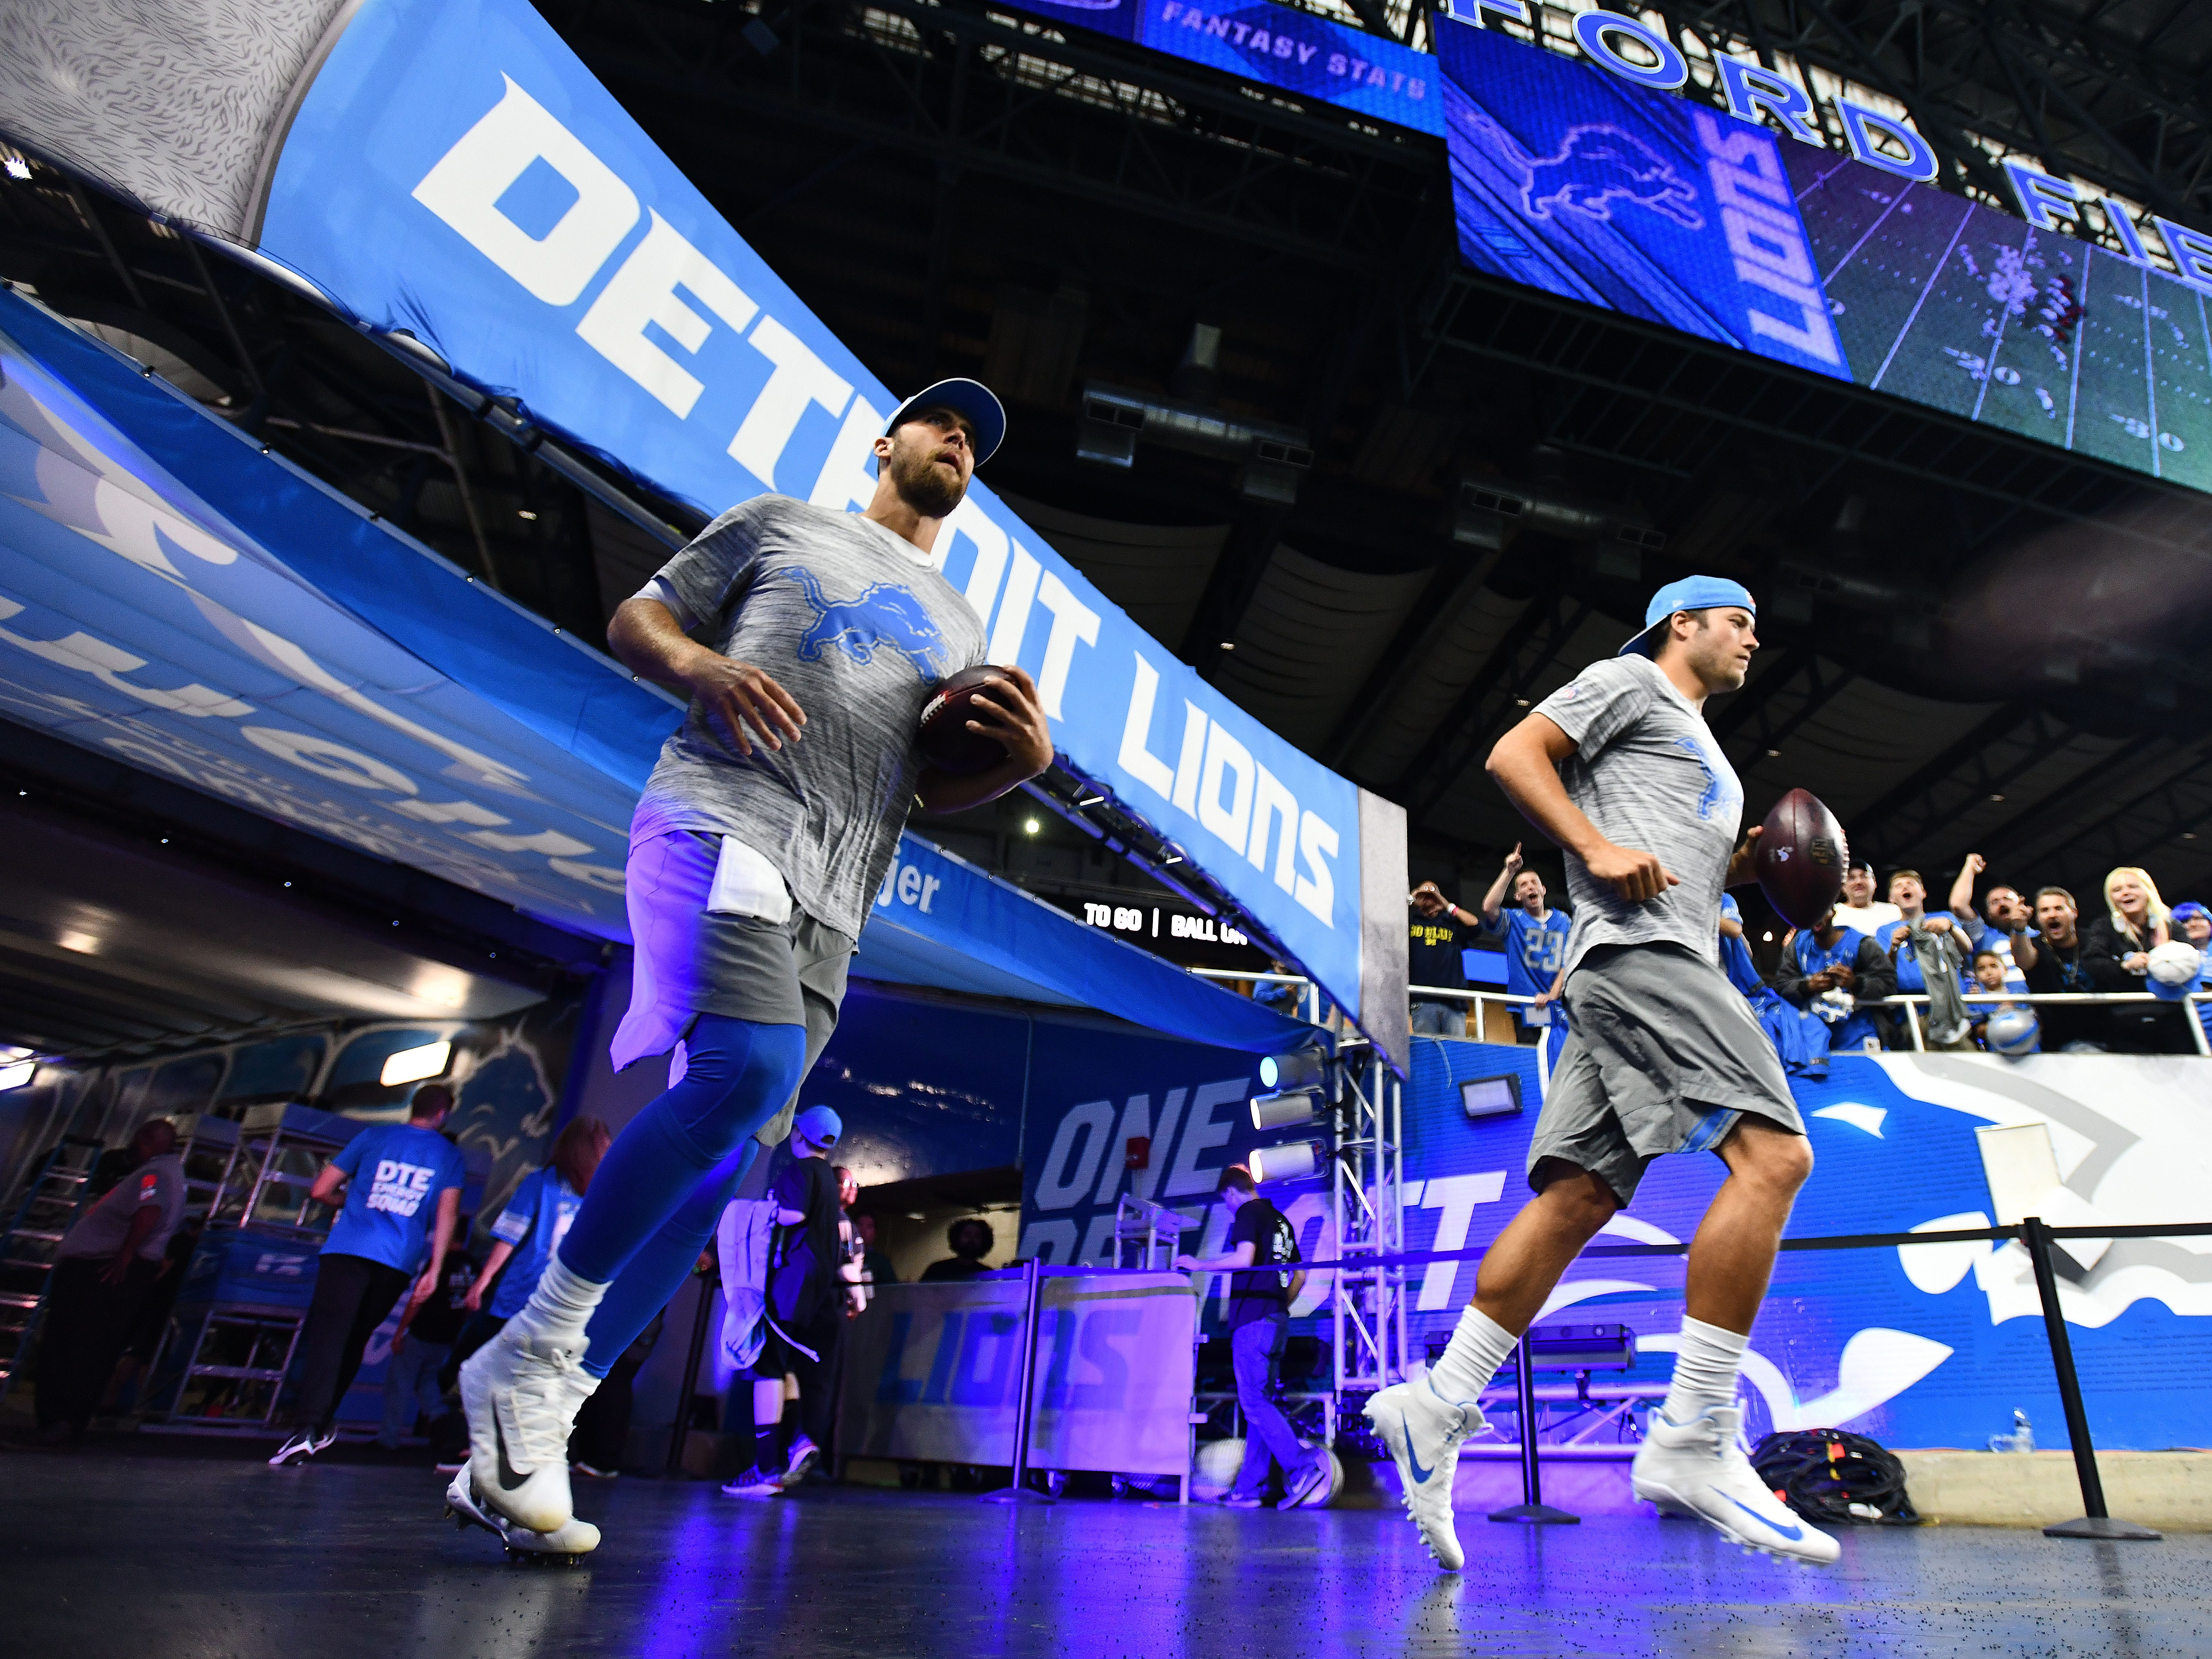 Lions quarterbacks Matt Cassel and Matthew Stafford make their way onto the field for warmups before the Detroit Lions take on the New York Jets at Ford Field in Detroit, Michigan on September 10, 2018.